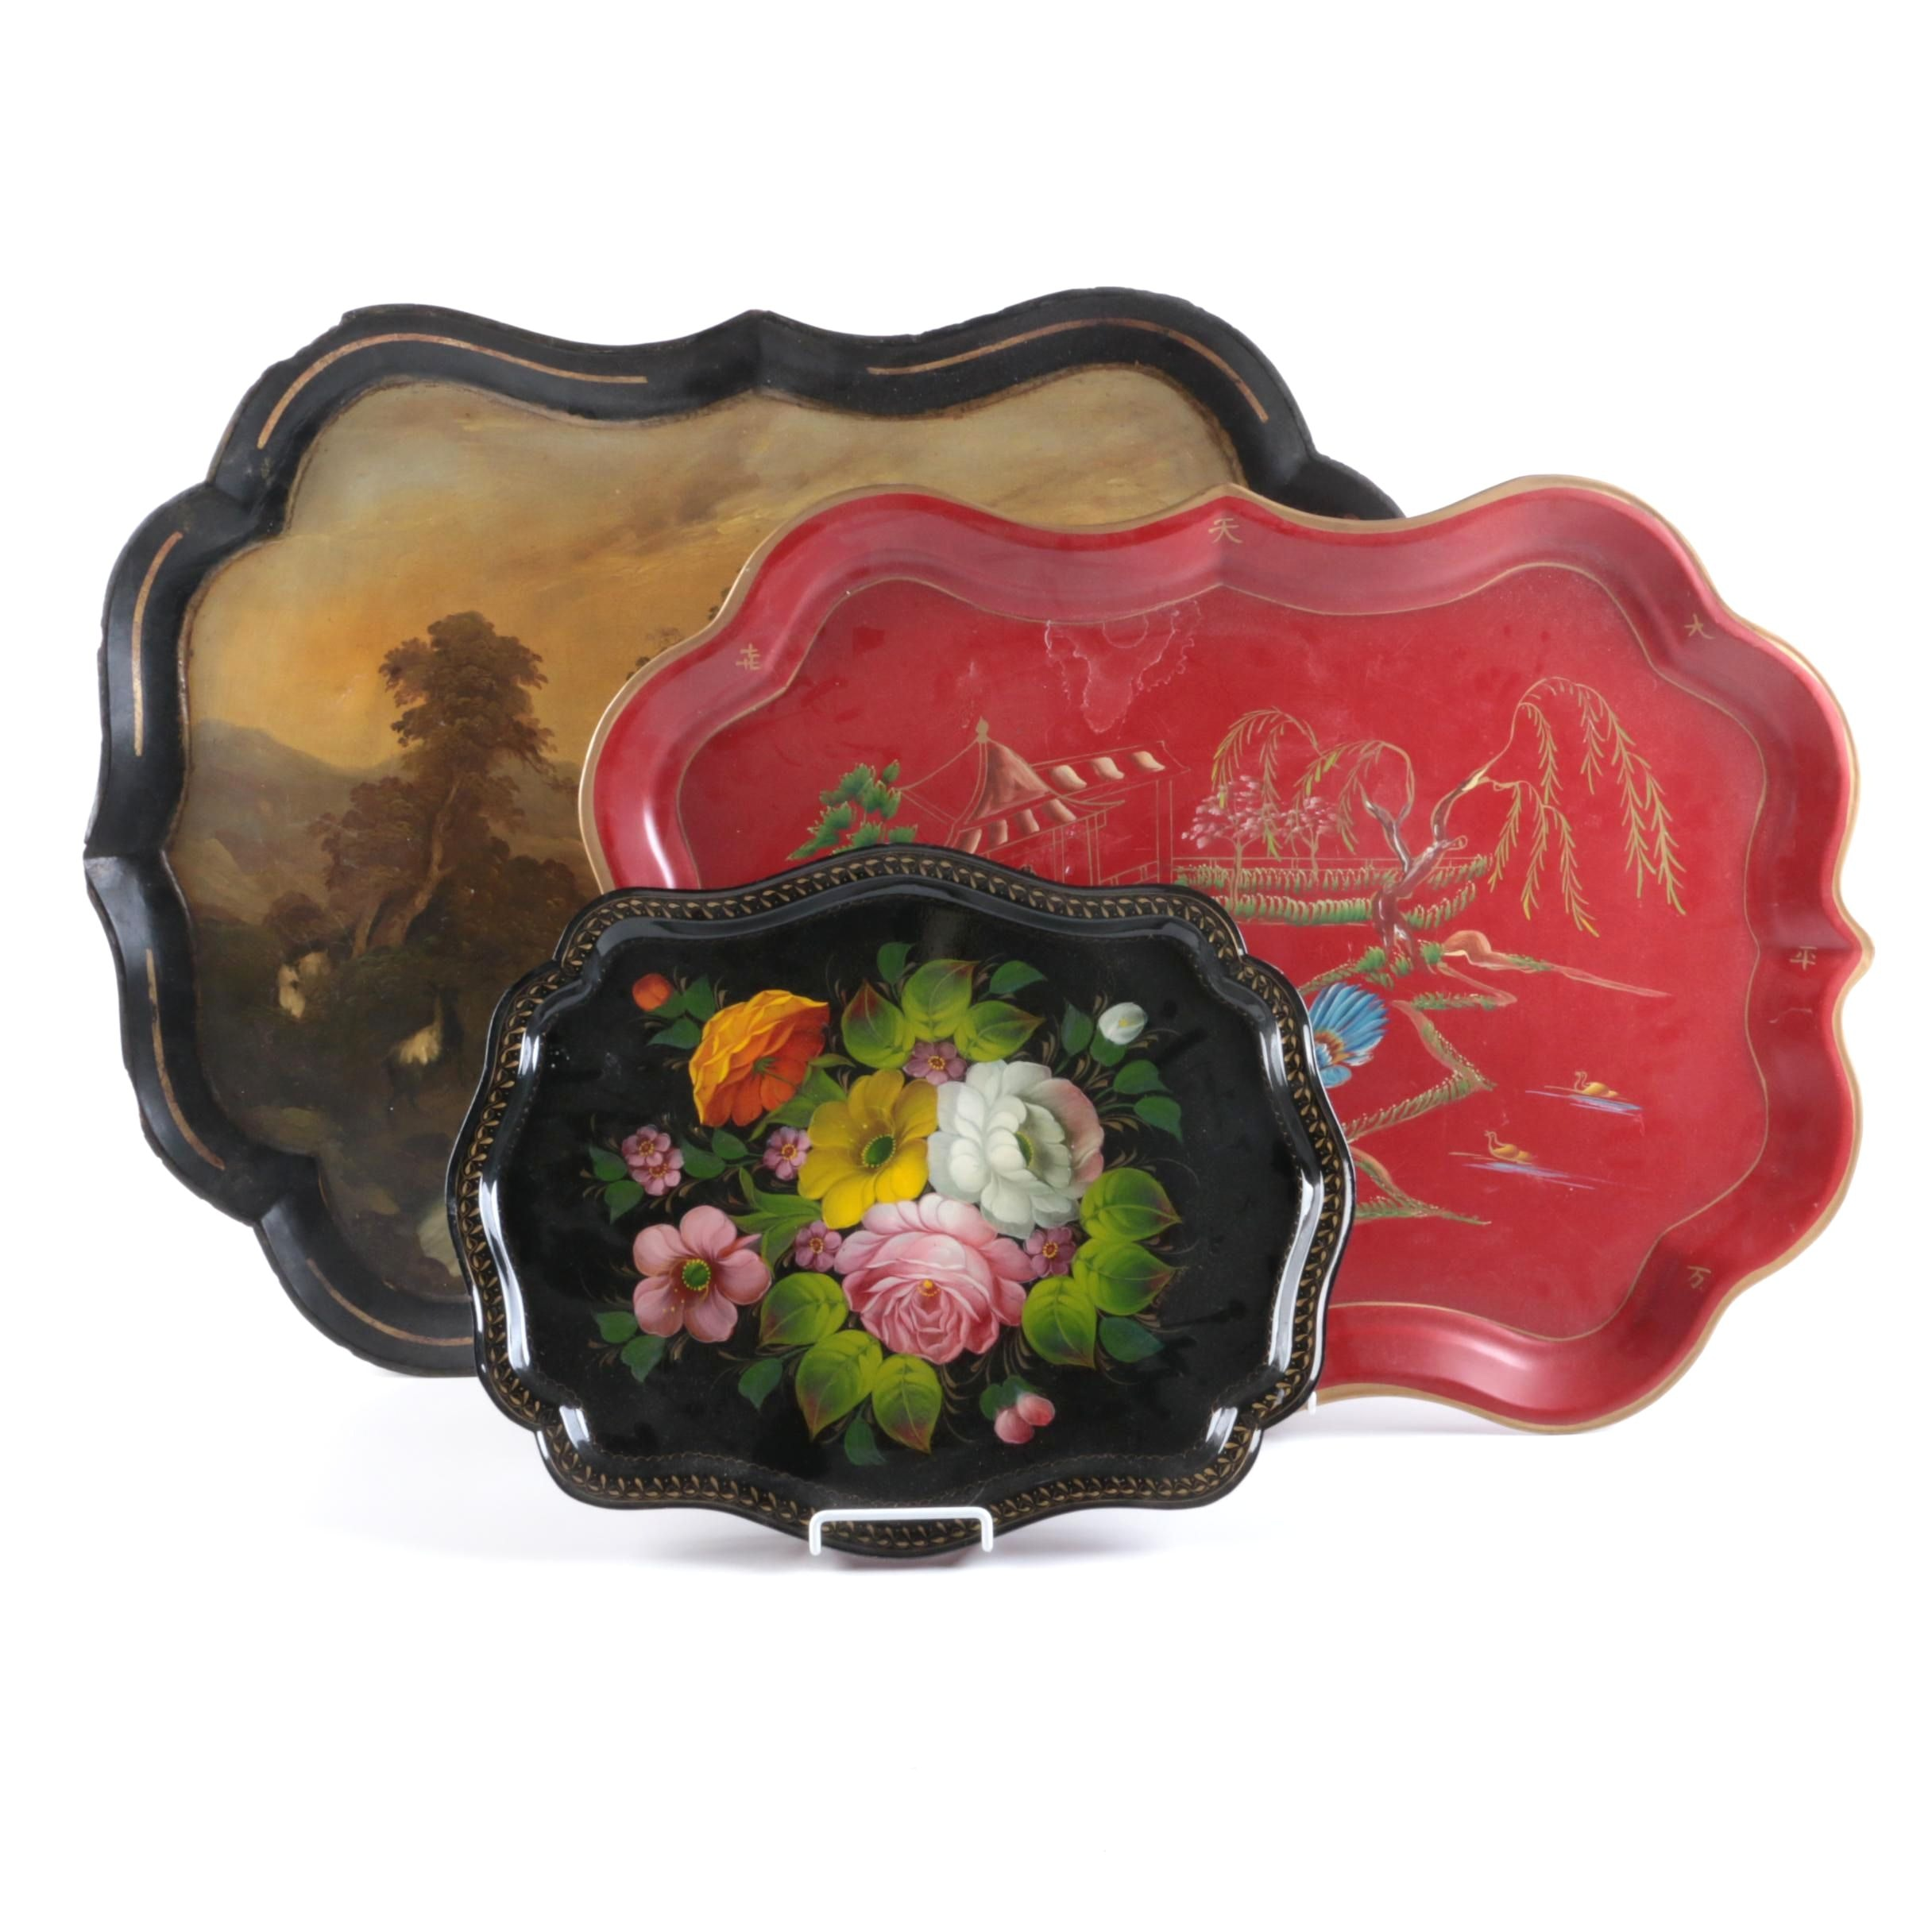 Decorative Trays Featuring Hand-Painted Designs